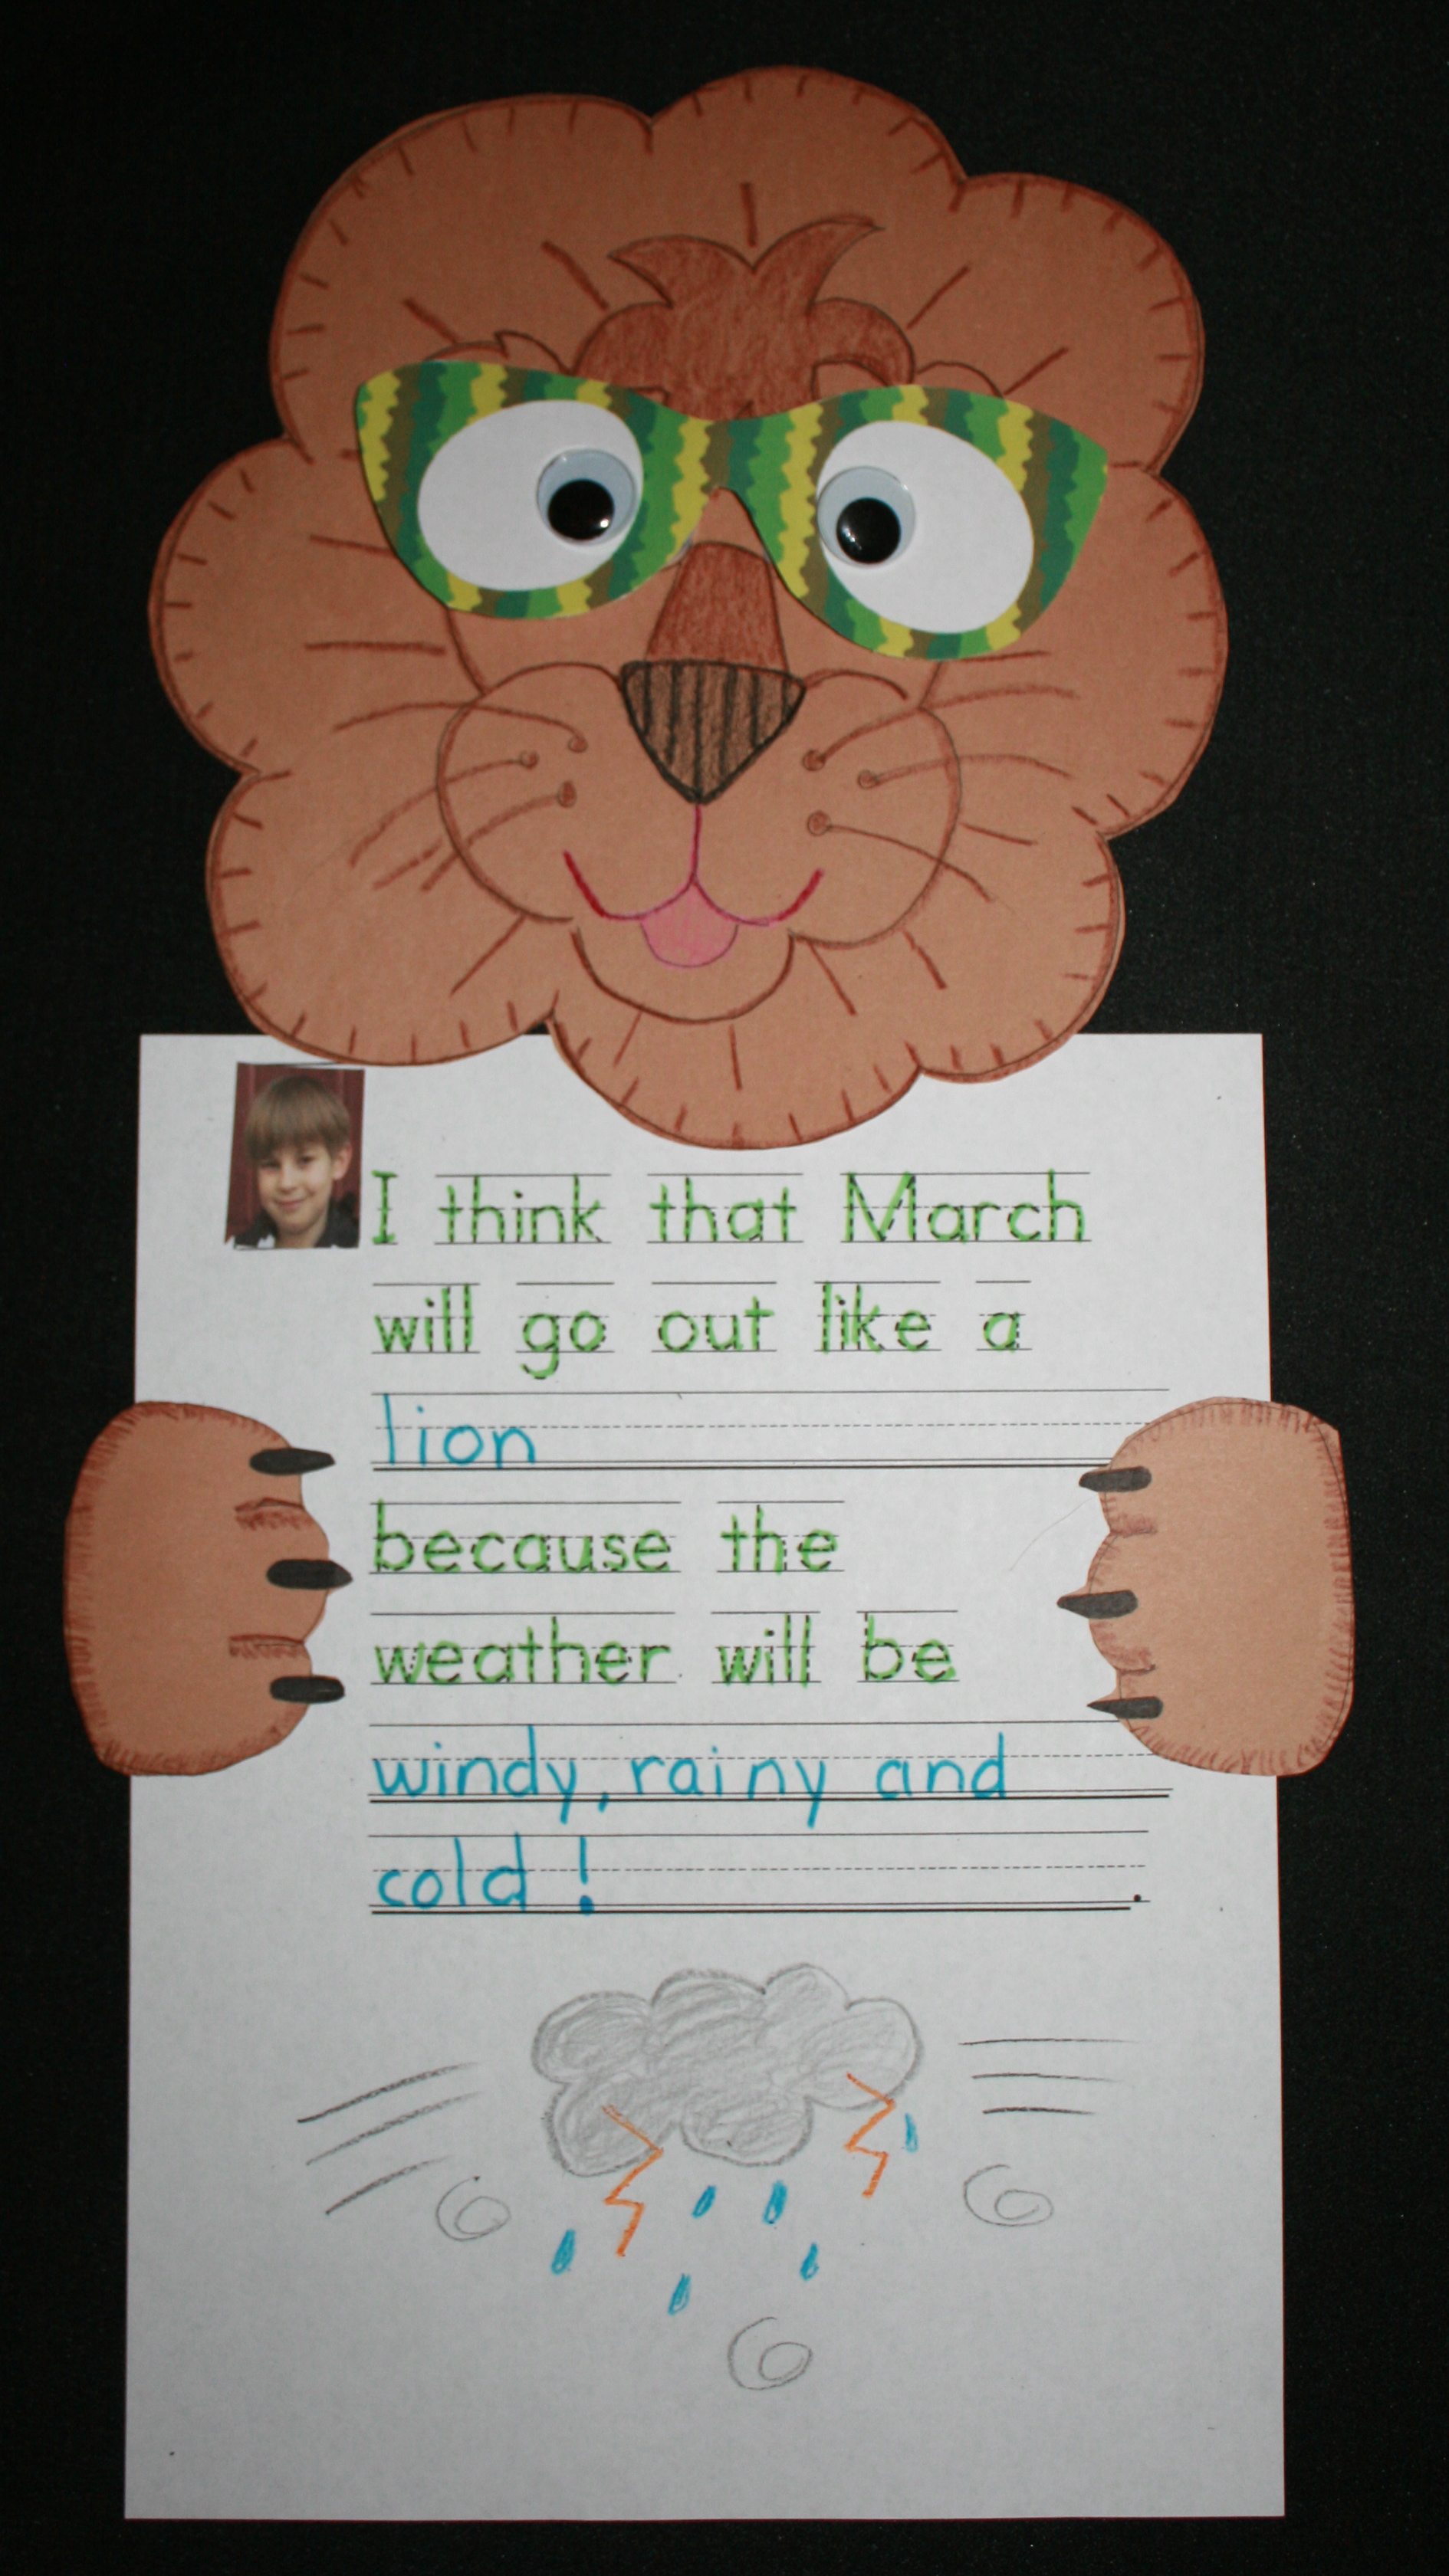 sheep slider, sheep activities, lion and lamb activities, march activities, springrime activities, sheep crafts, lamb crafts, nursery rhyme crafts, nursery rhyme activities, sheep booklet, lion booklet, march writing prompts, march class books, writing class books, sheep activities for preschool kindergarten and first grade, lion activities for preschool kindergarten and first grade, lion mask, sheep mask, lion puppet, March writing prompts, sheep puppet,